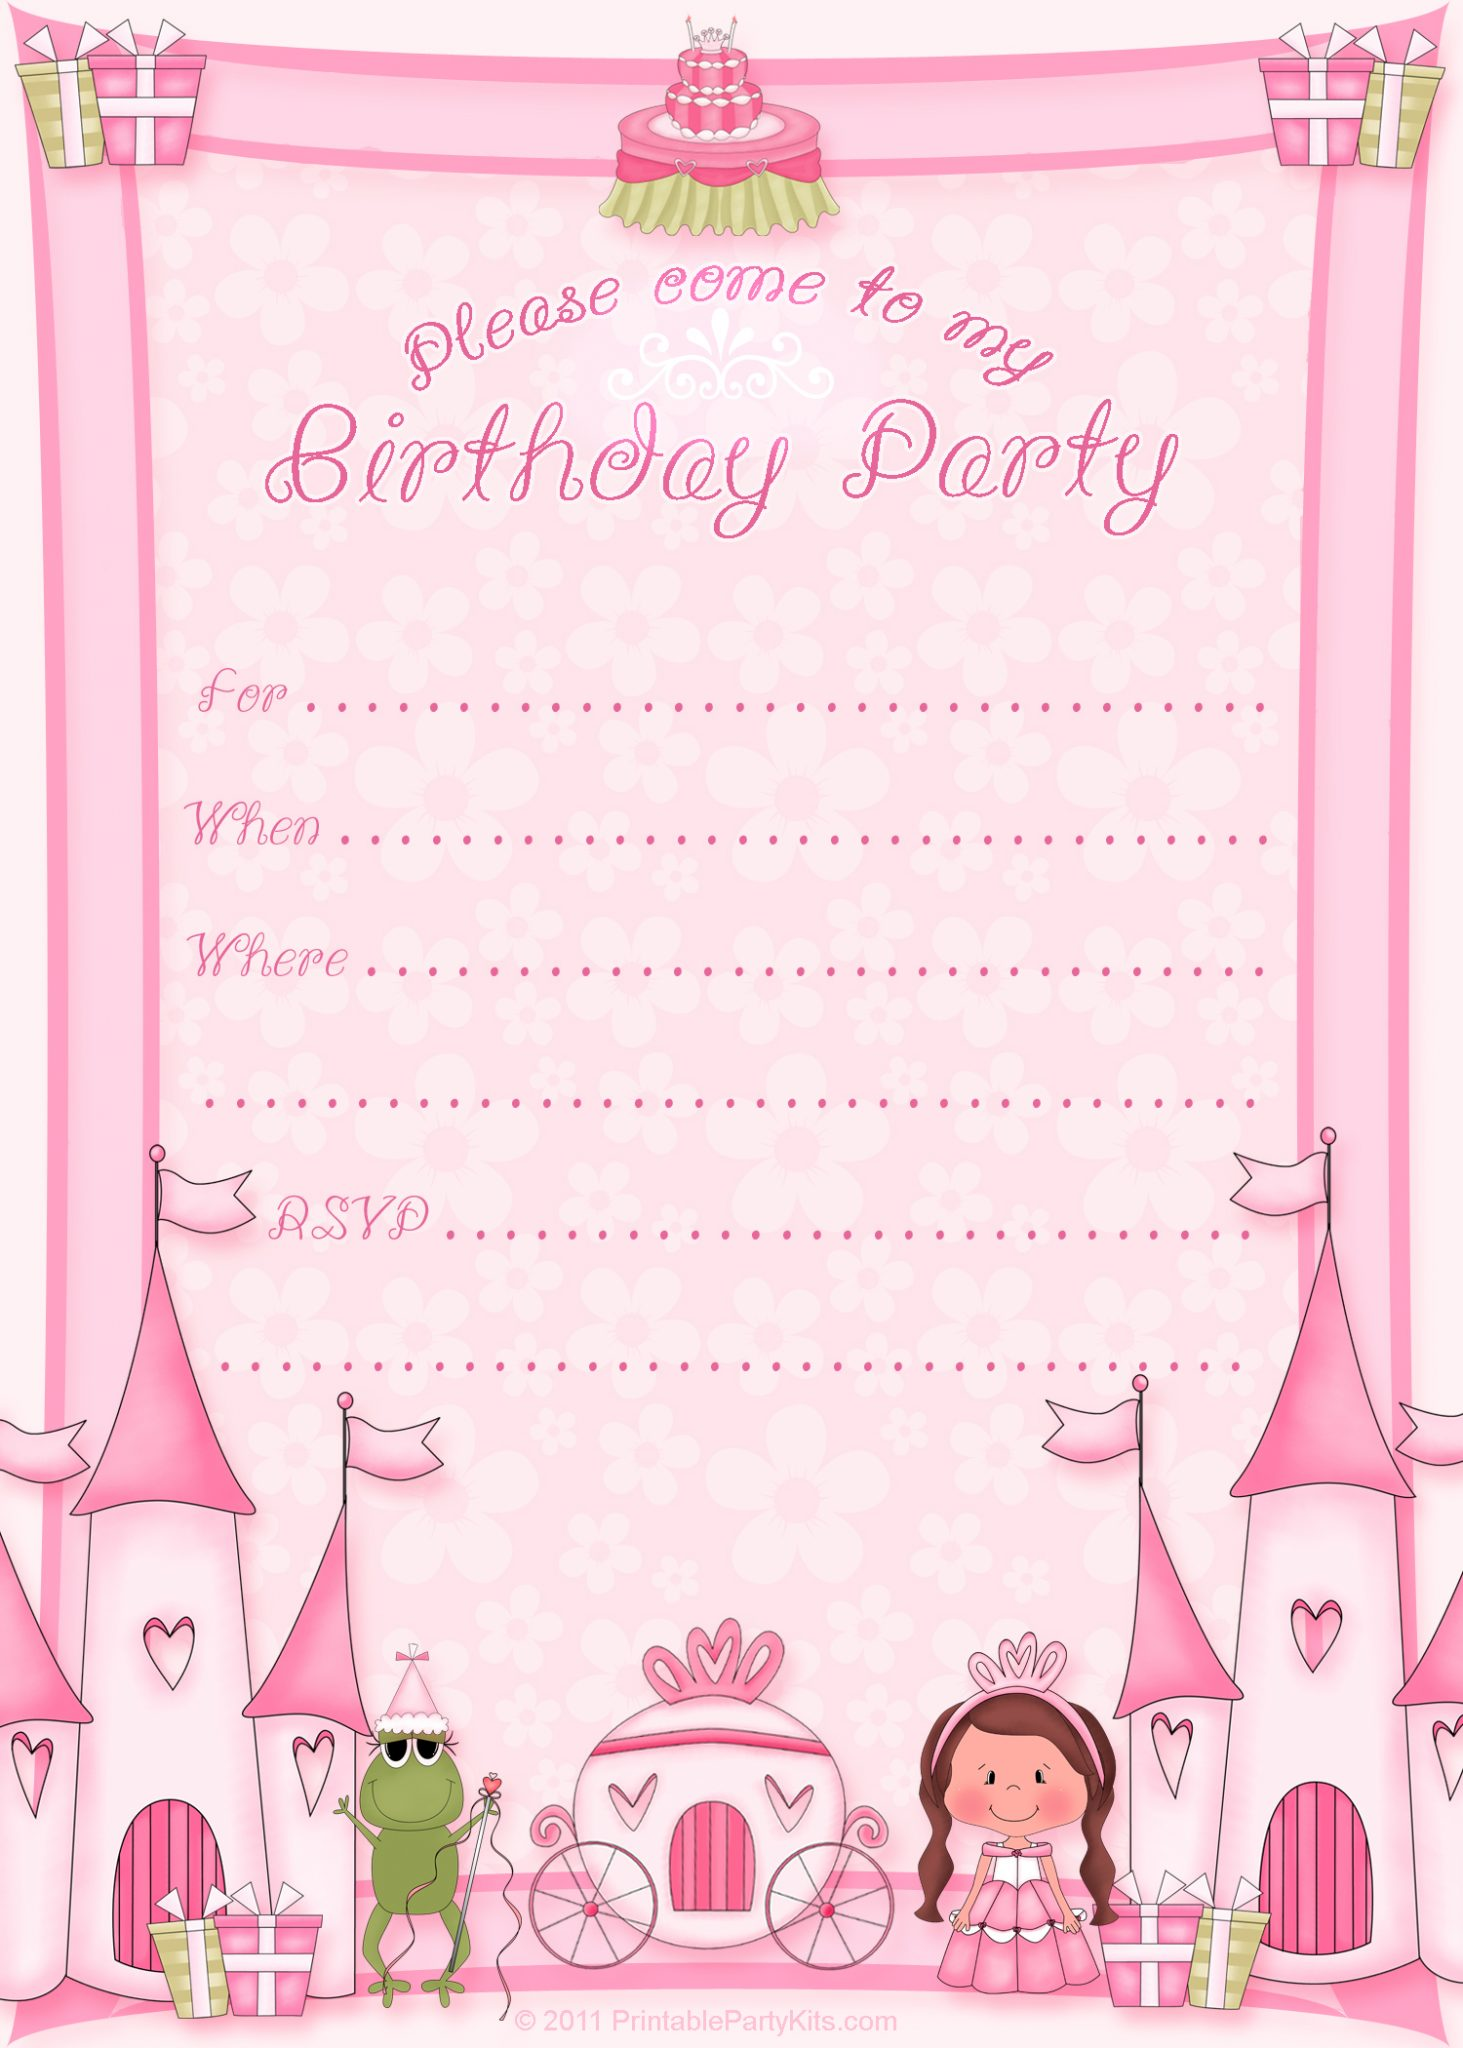 50 Free Birthday Invitation Templates You Will Love These – Free Invitation Design Templates